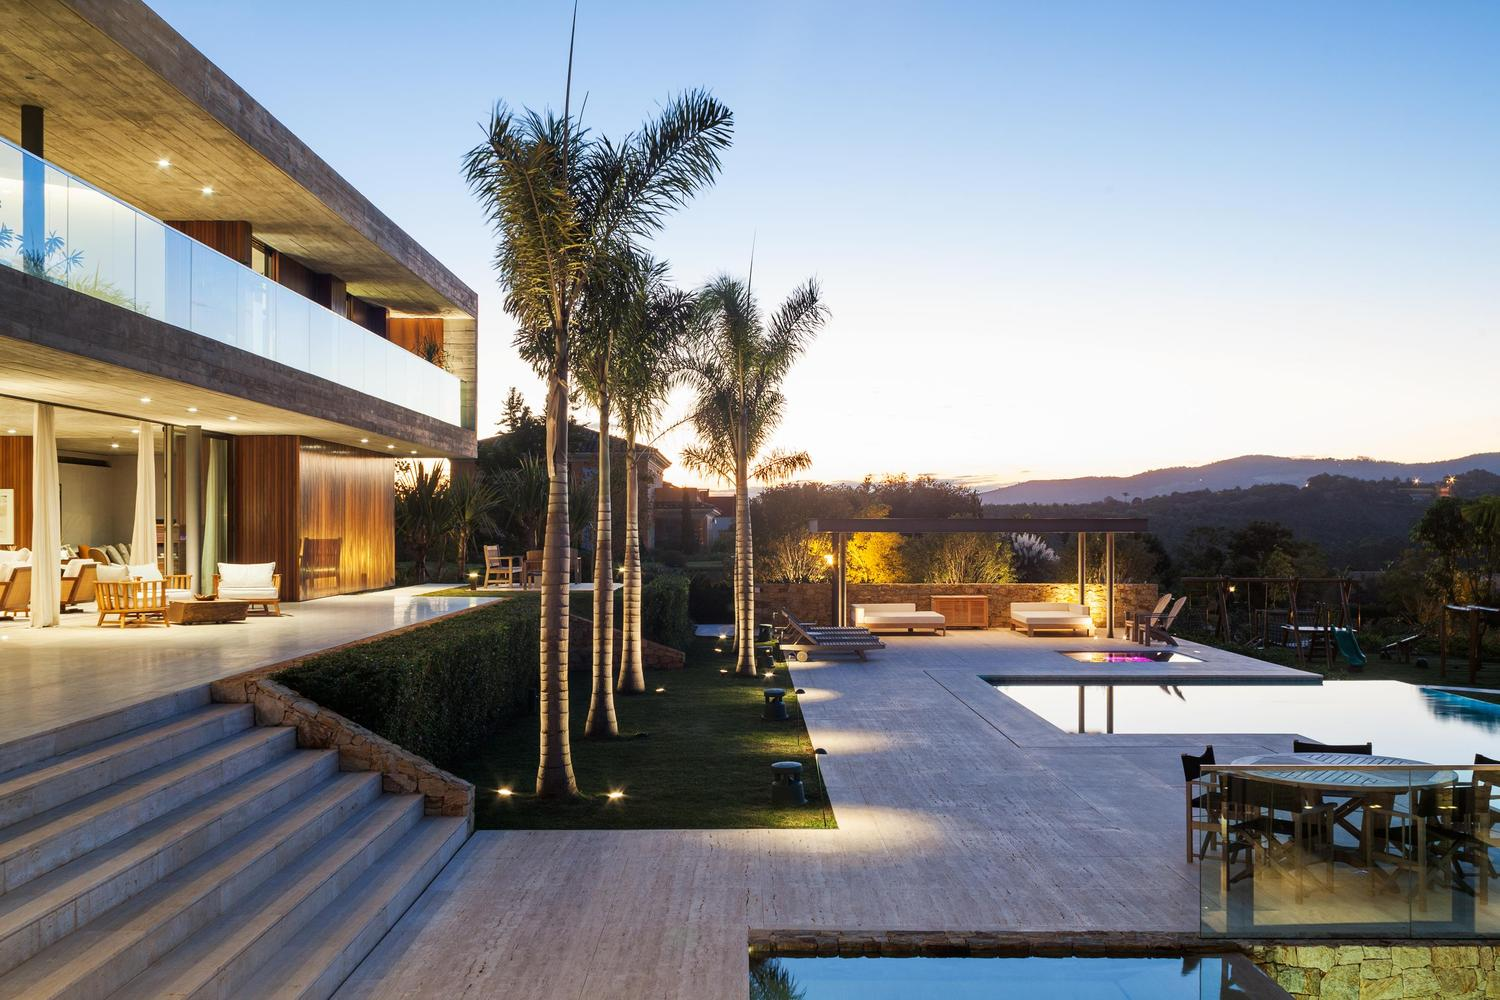 House with wonderful outdoor spaces in Brazil, designed by Reinach Mendonça Arquitetos Associados